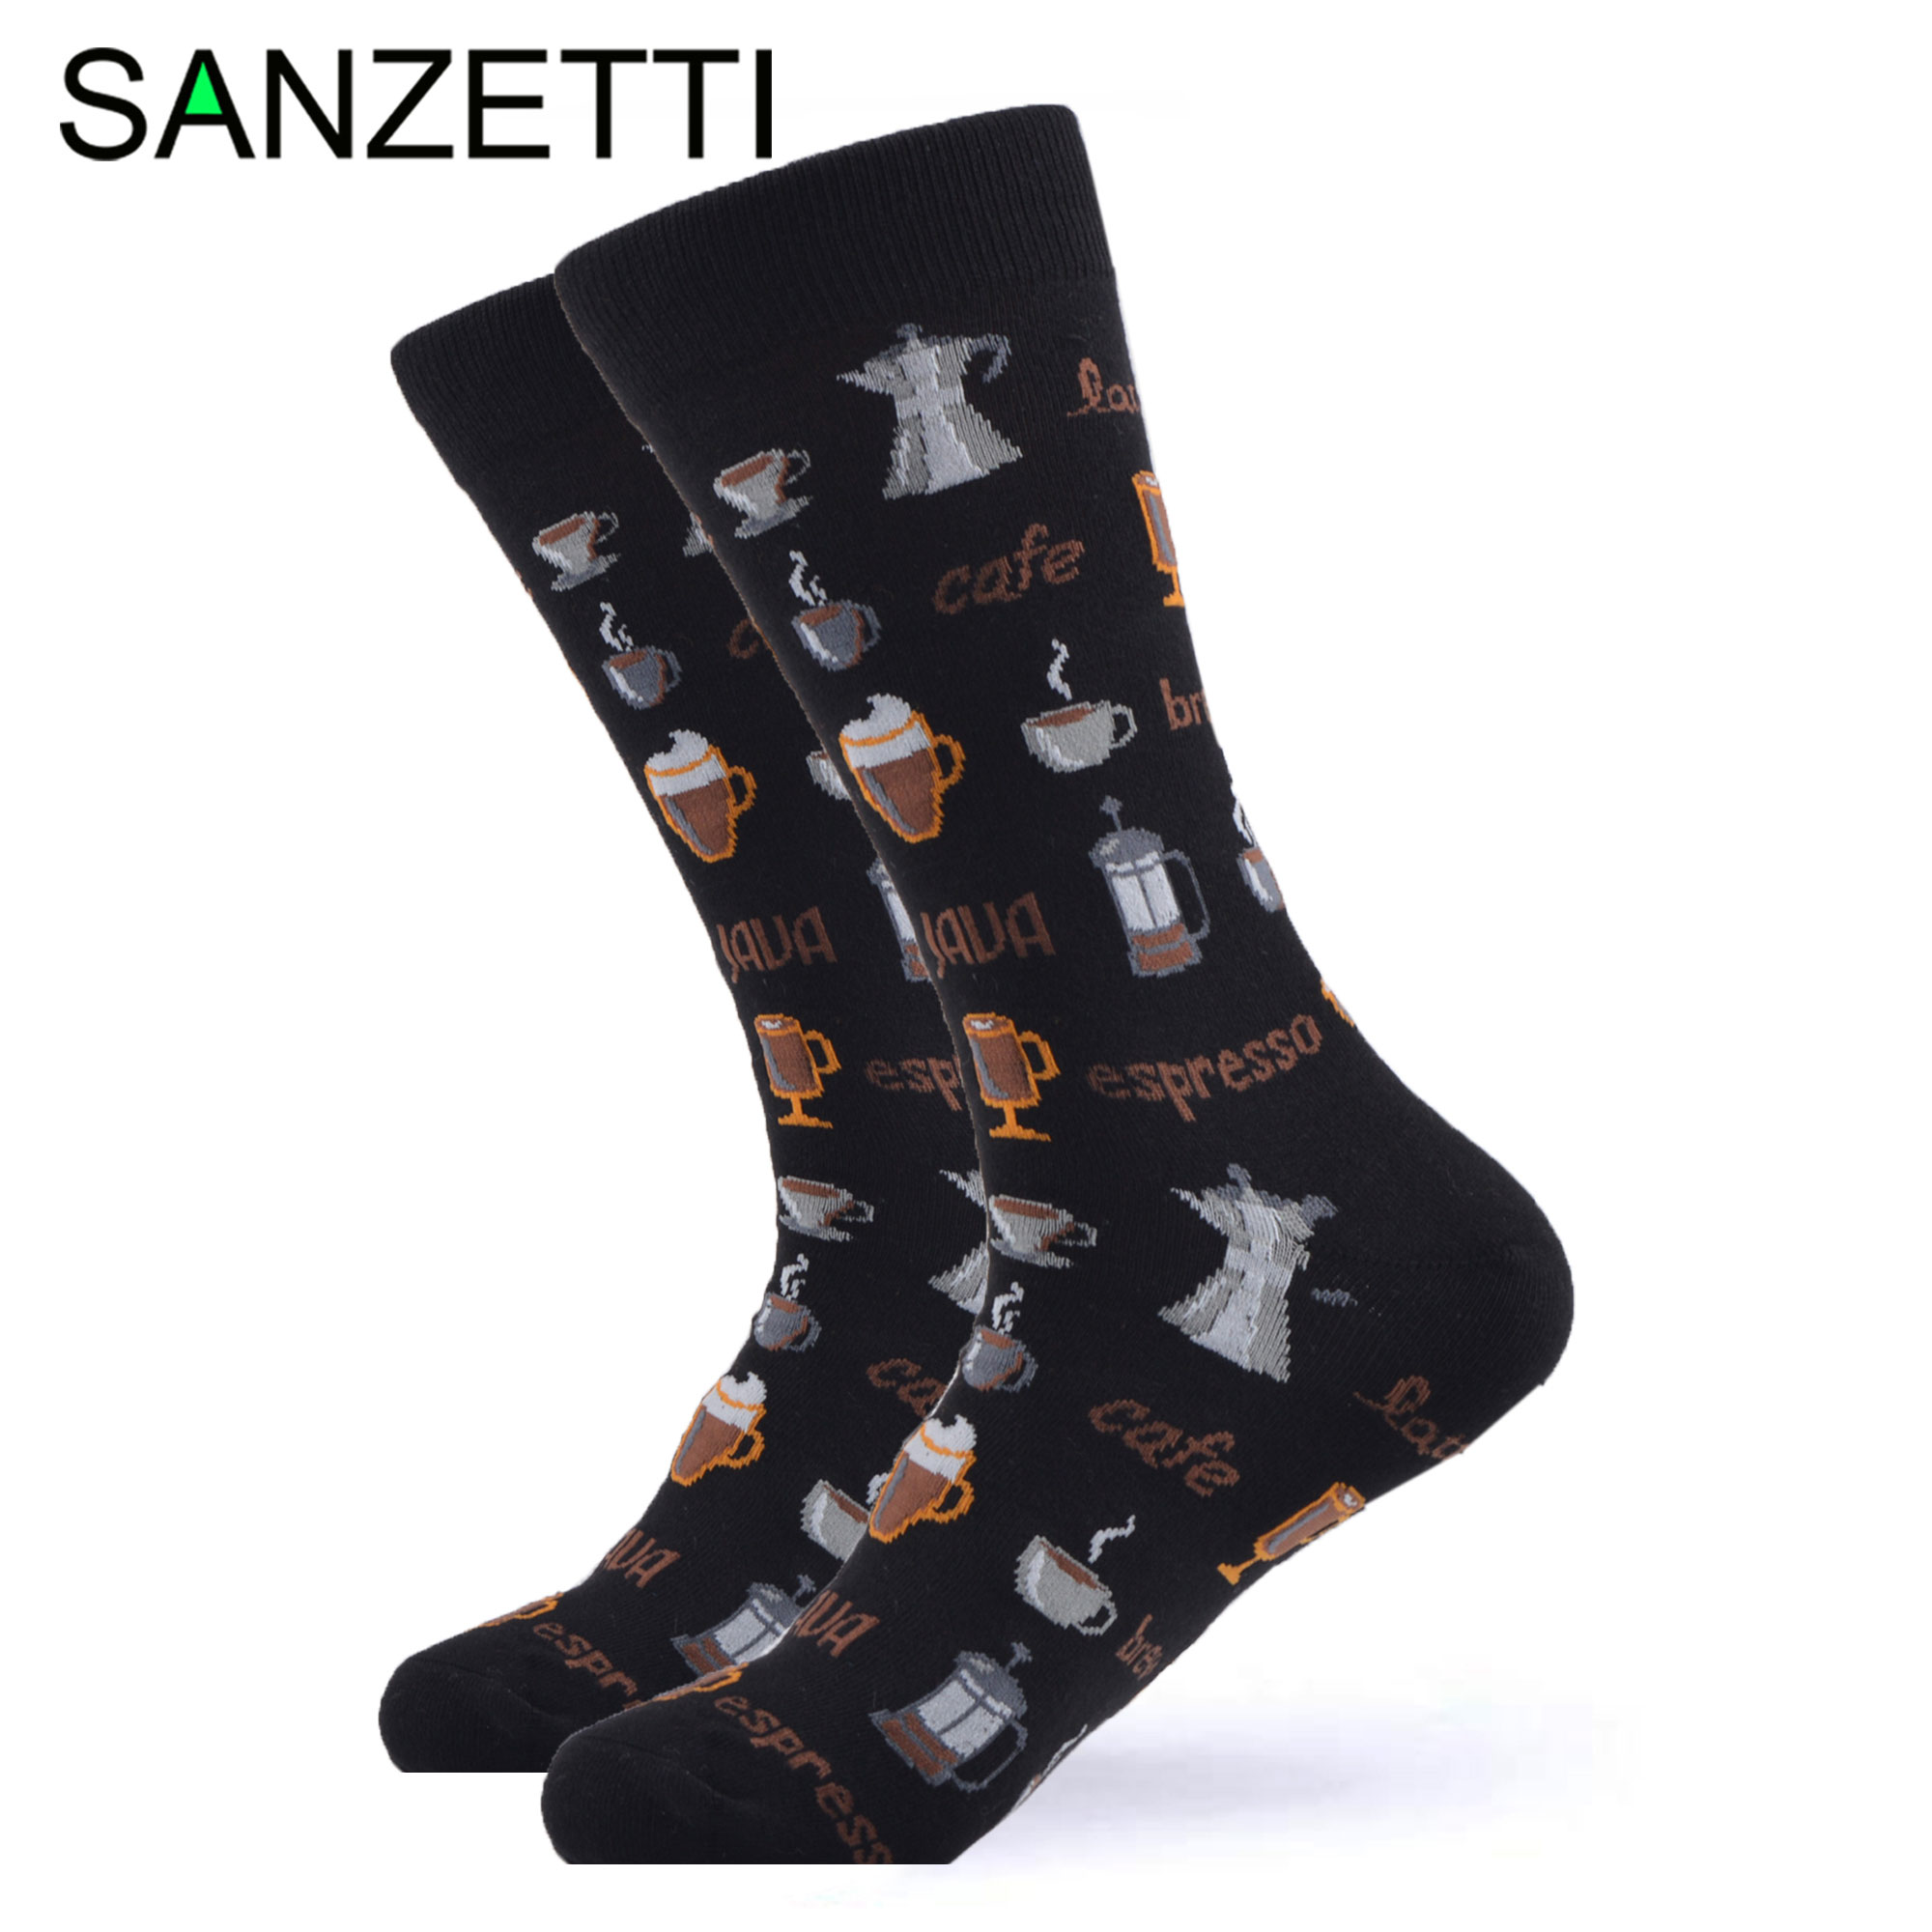 SANZETTI 1 Pair Happy Socks High Quality Men Colorful Combed Cotton Coffee Breakfast Fries Cheese Bacon Gift Wedding Dress Socks